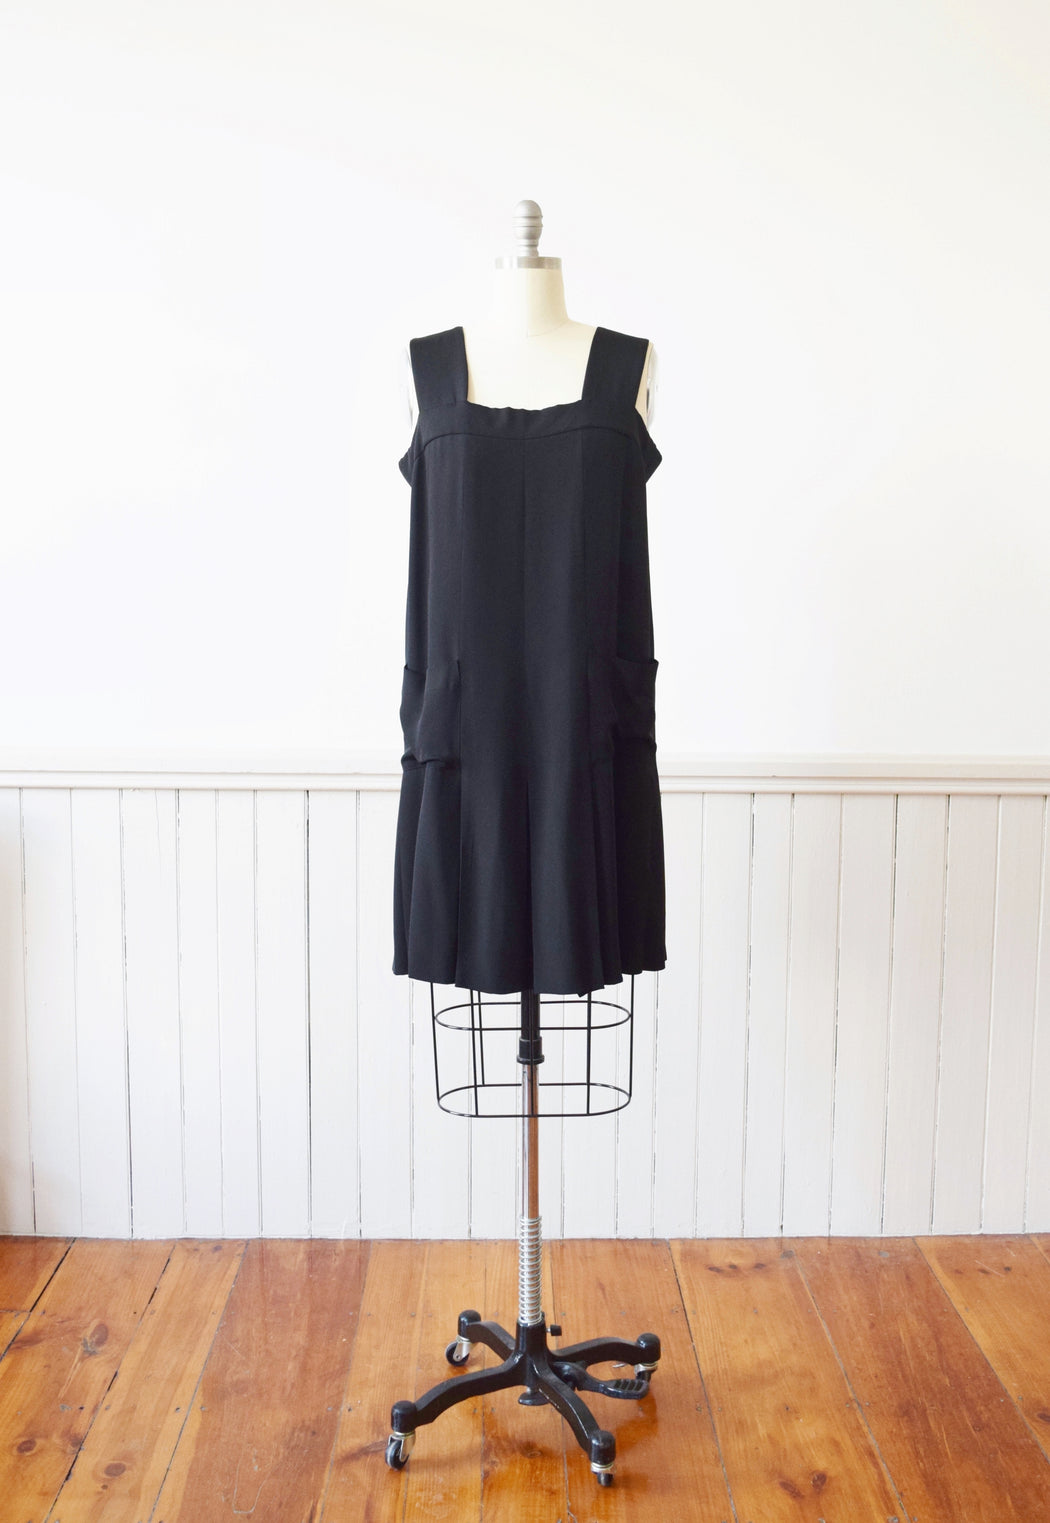 CHANEL Black Silk Dress | 1980s Vintage | Flapper-Style | M